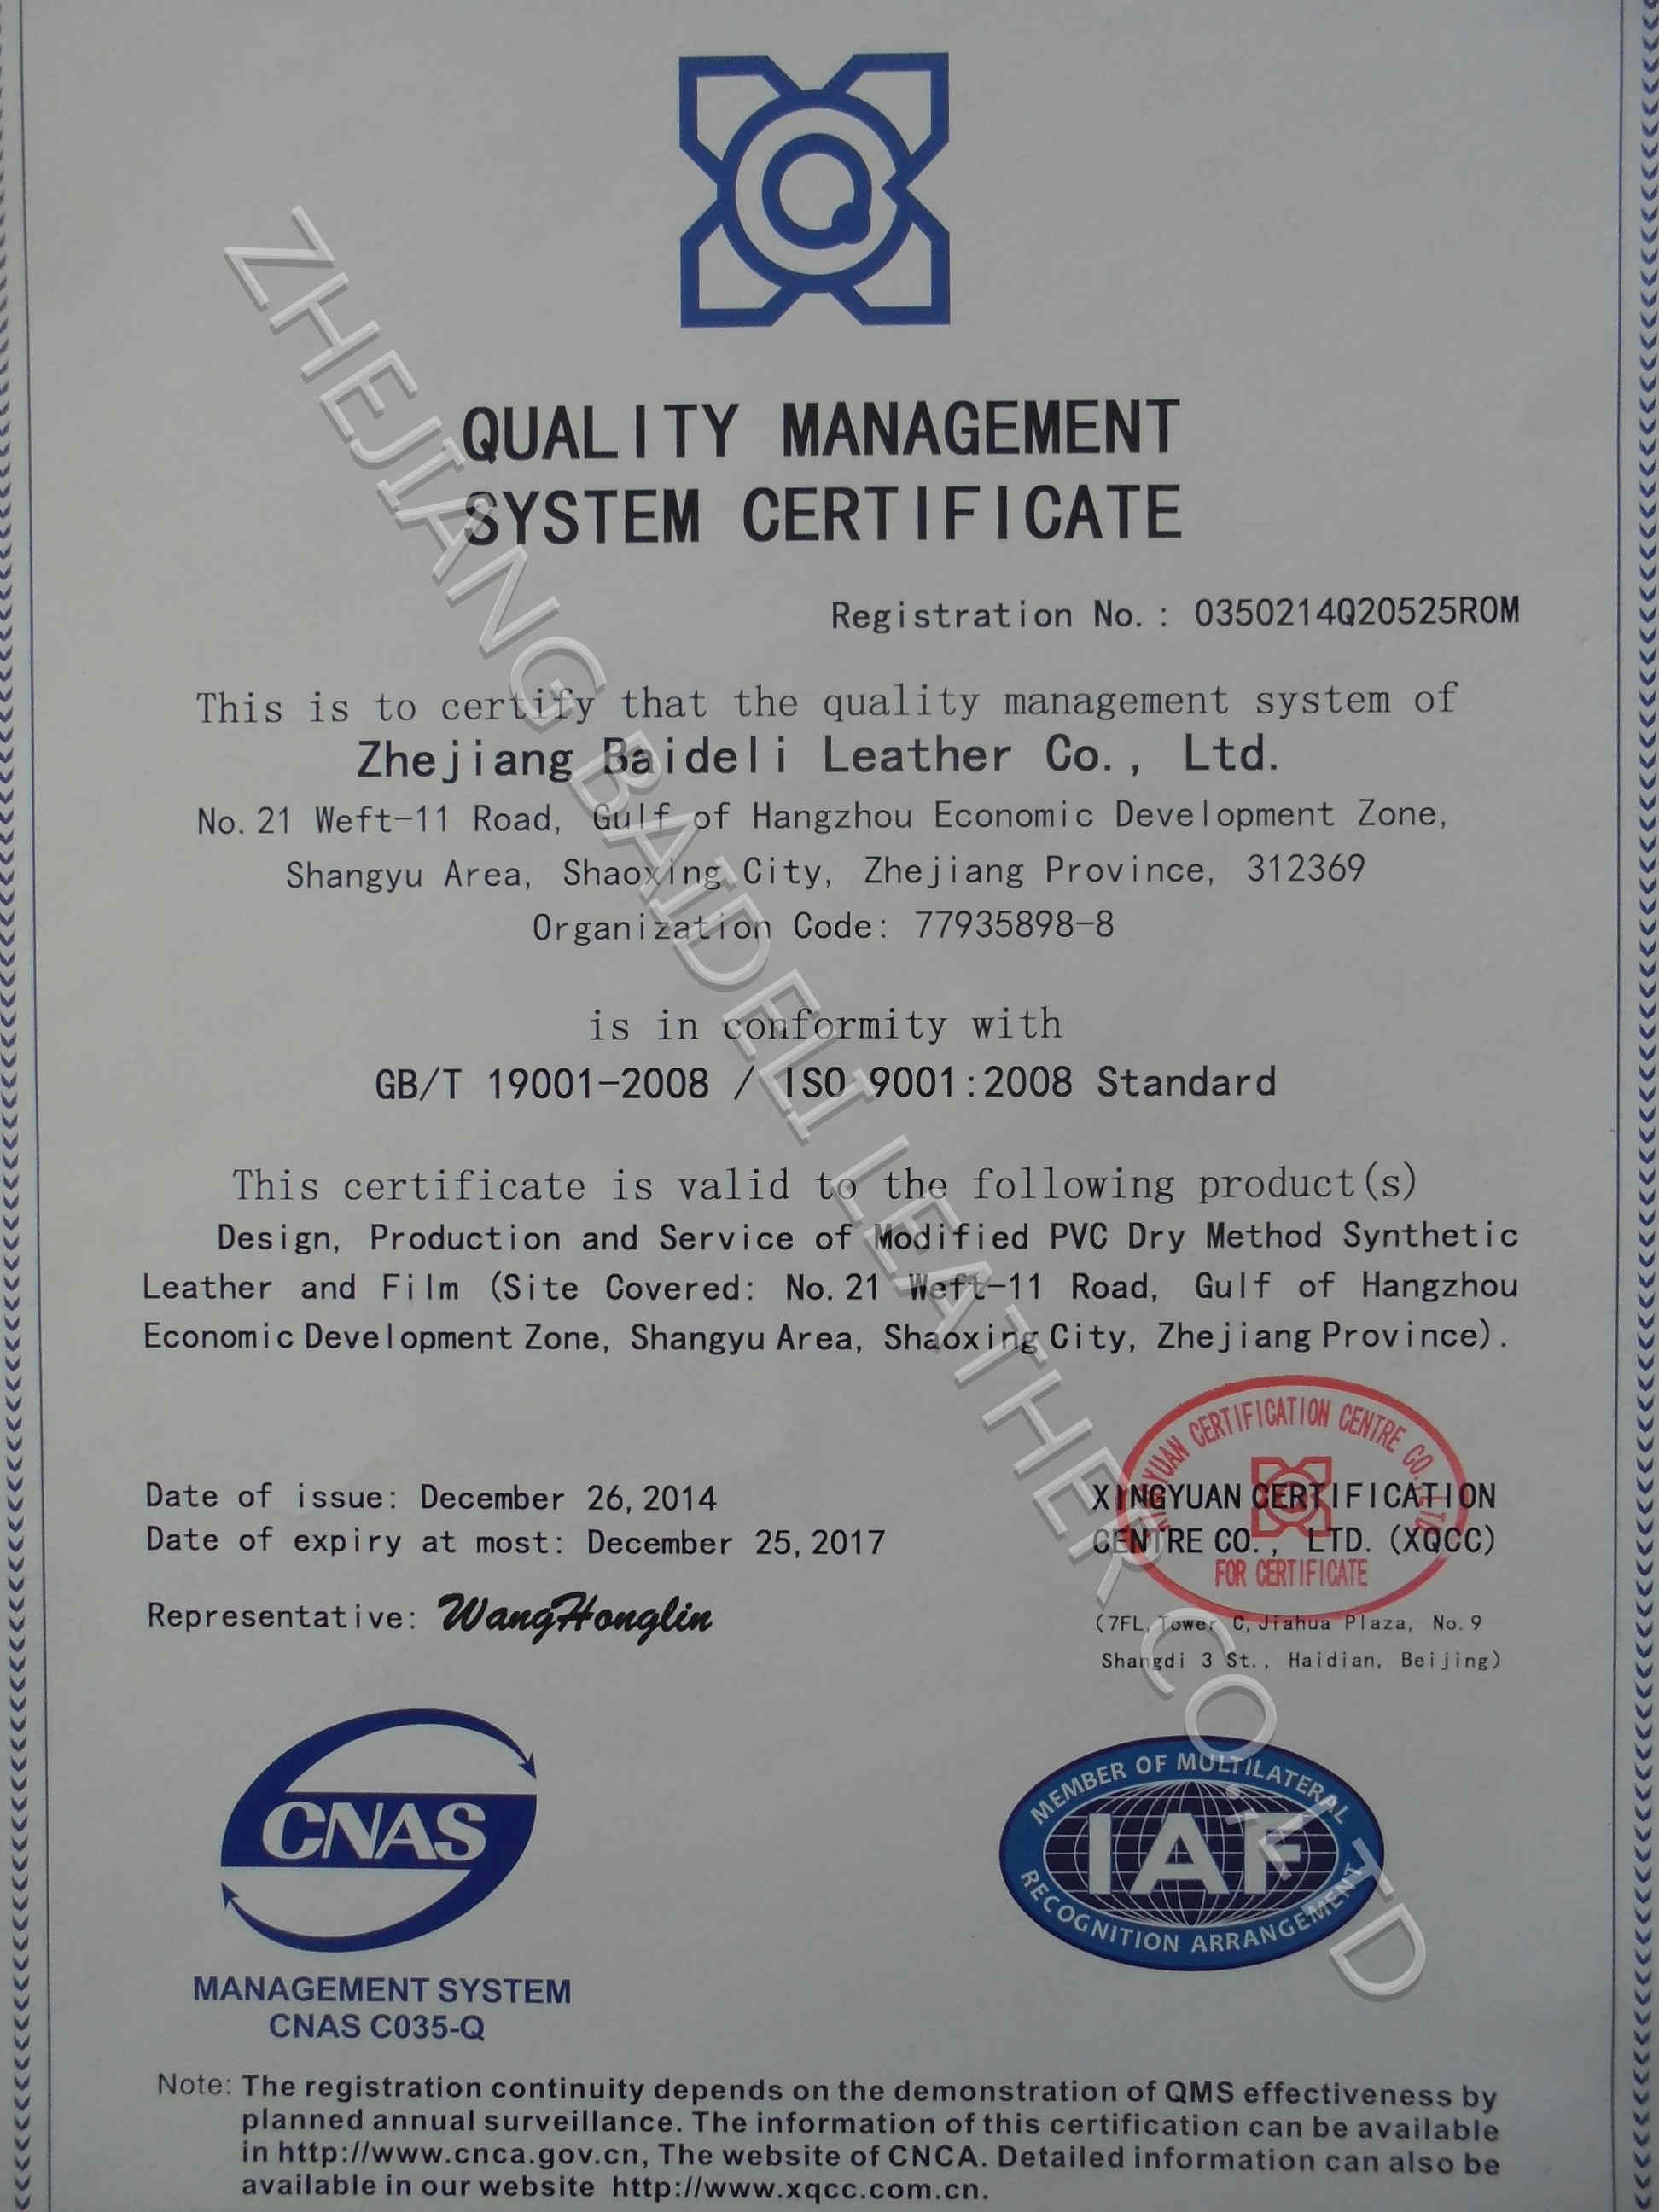 QUALITY MANAGEMENT SYSTEM CERTIFICATE(DSCO3113)